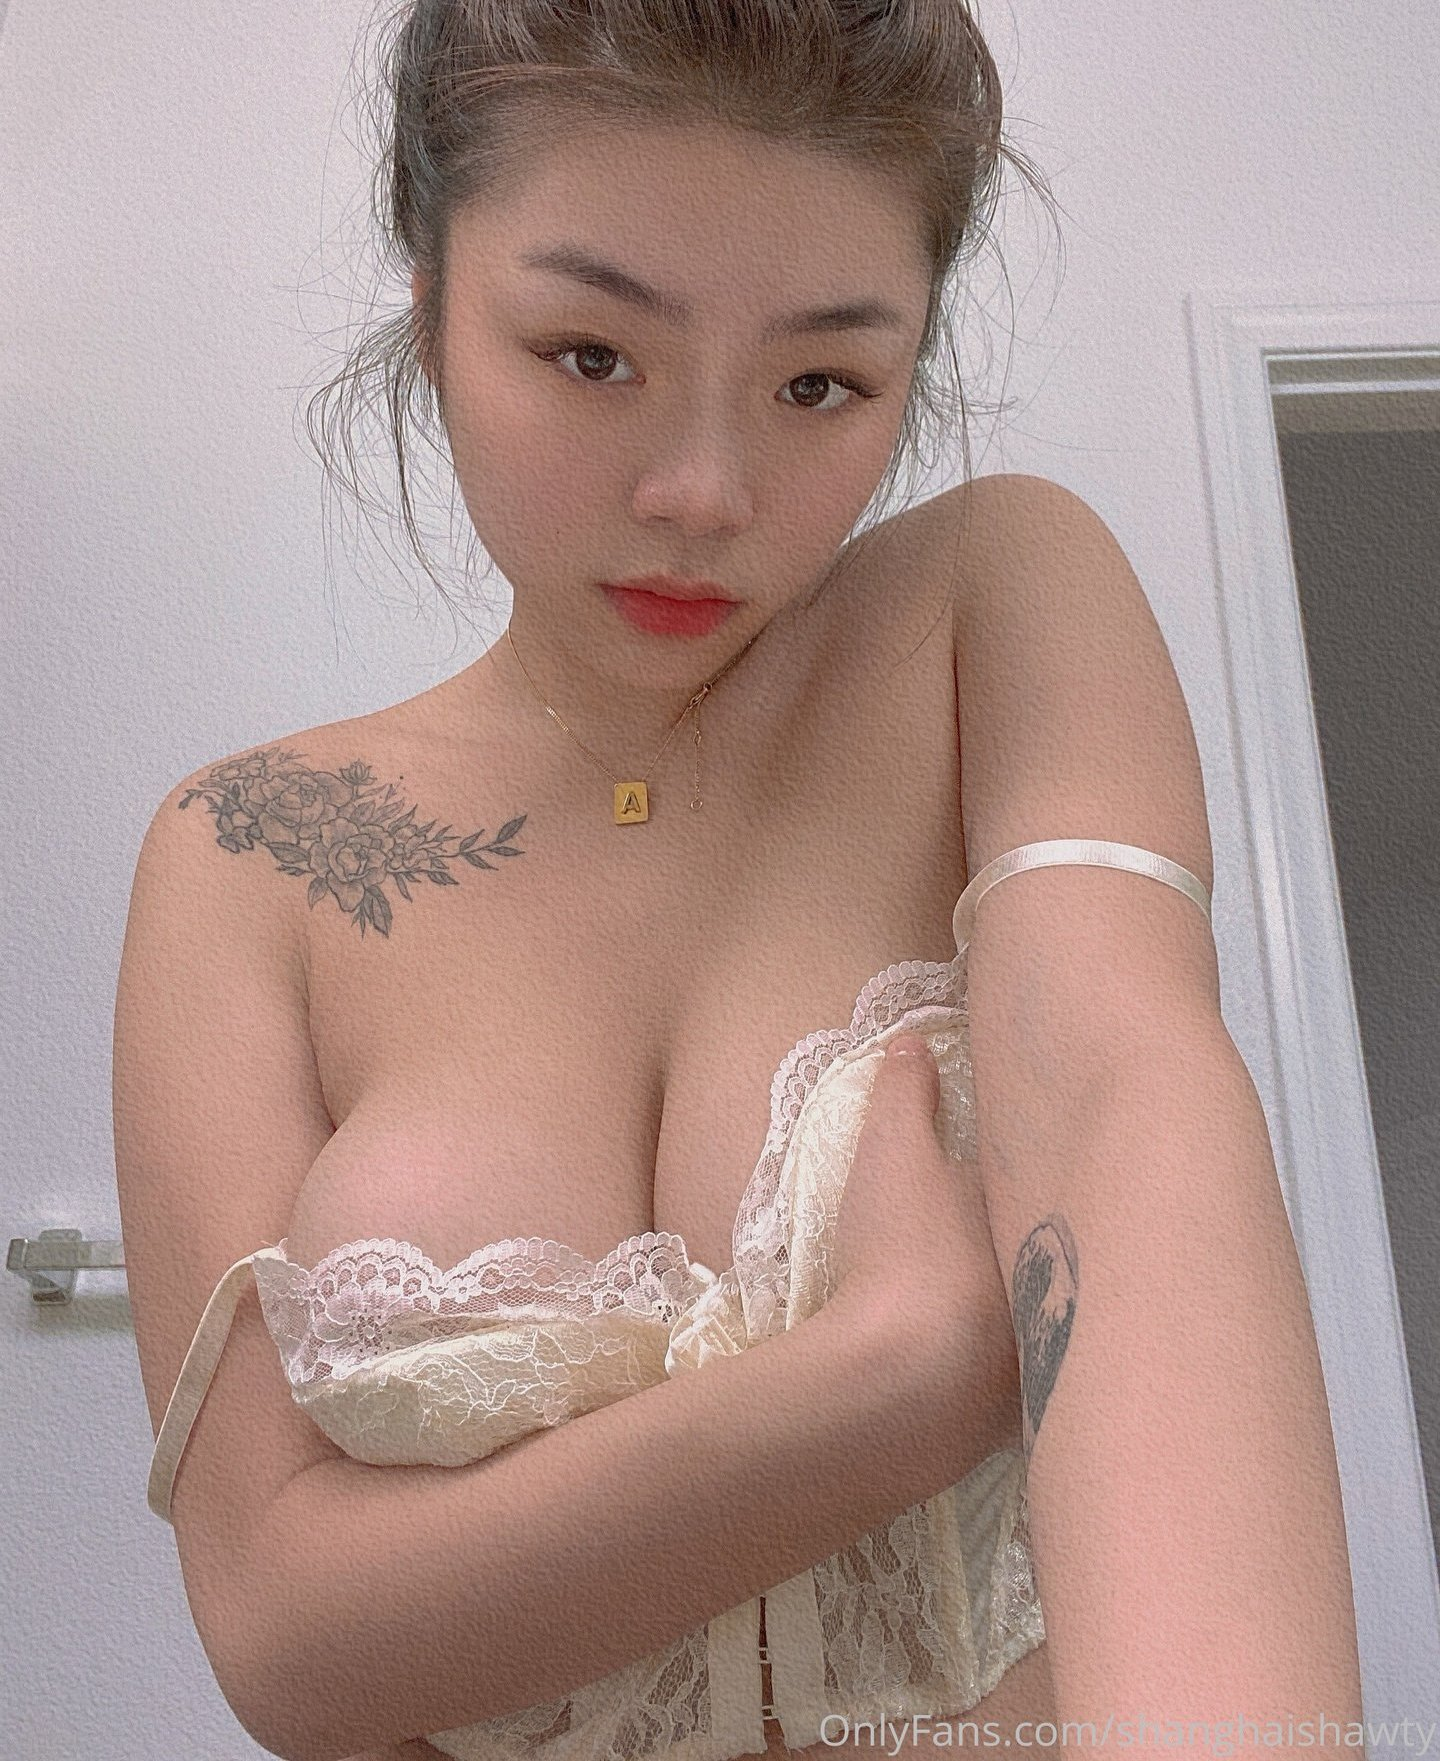 Shanghai Shawty Xanqiue Onlyfans Sexy Leaks 0022